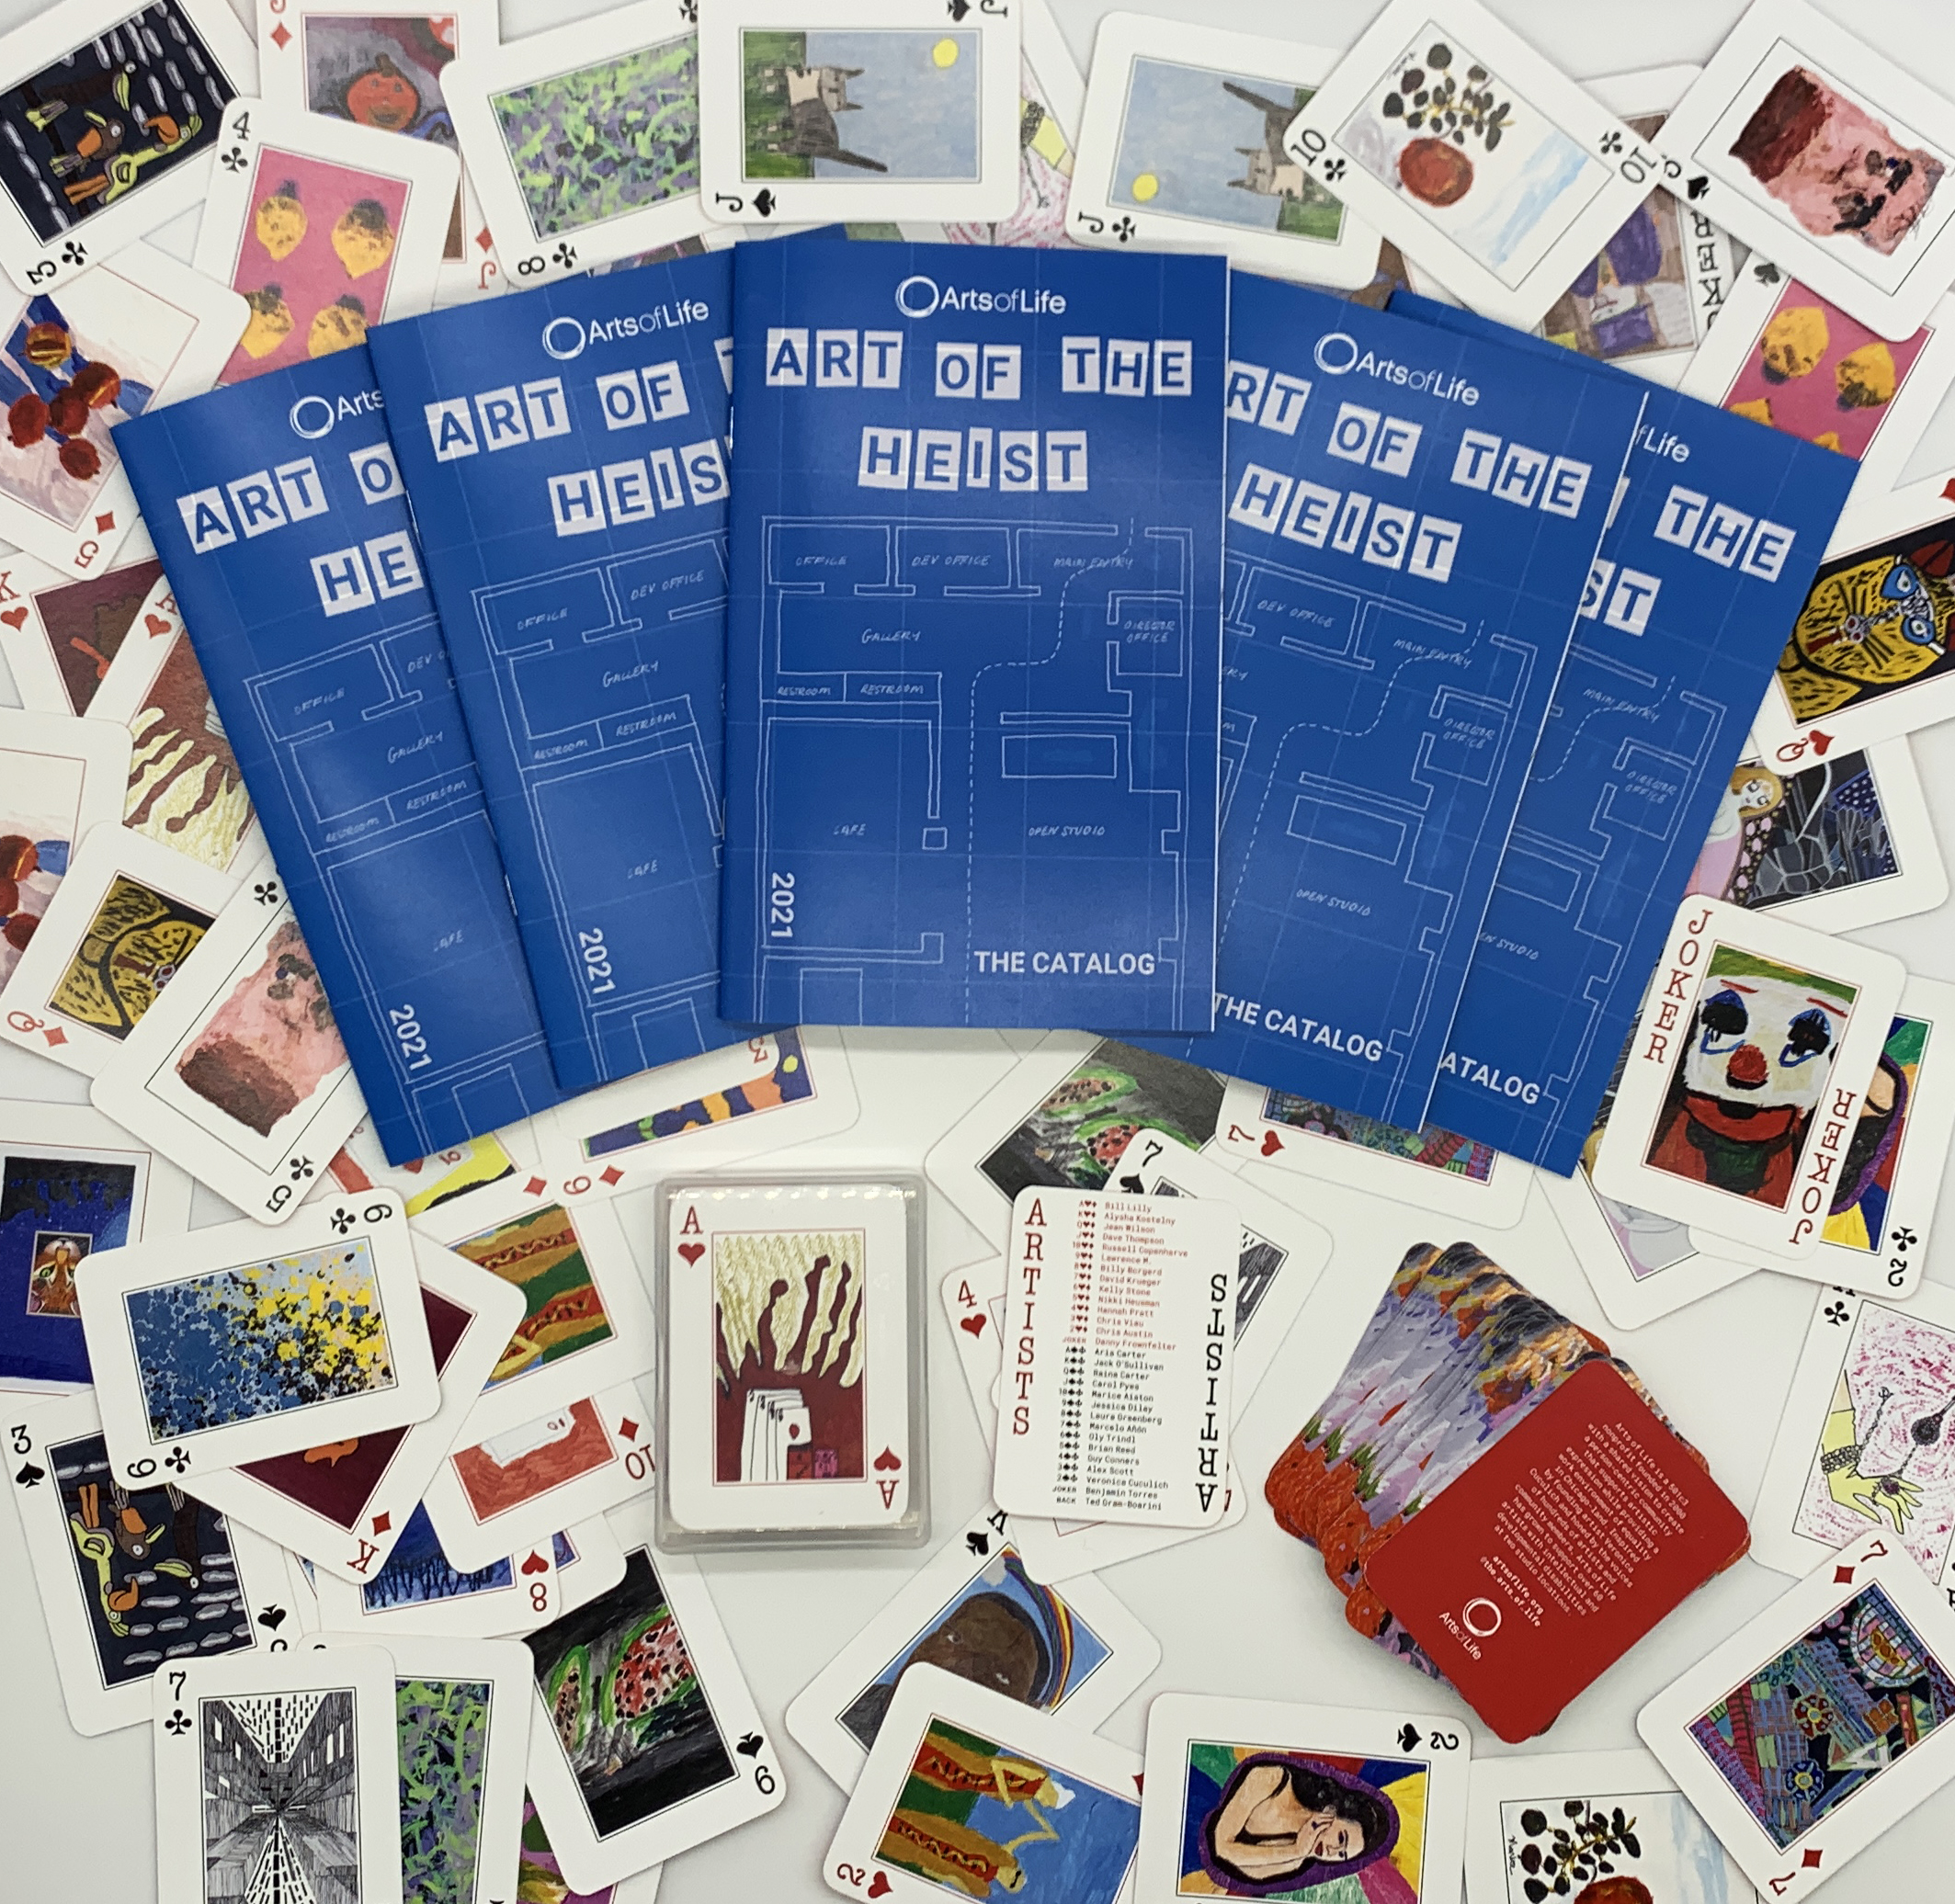 Image of Arts of Life playing card decks and auction catalogs for Art of the Heist.